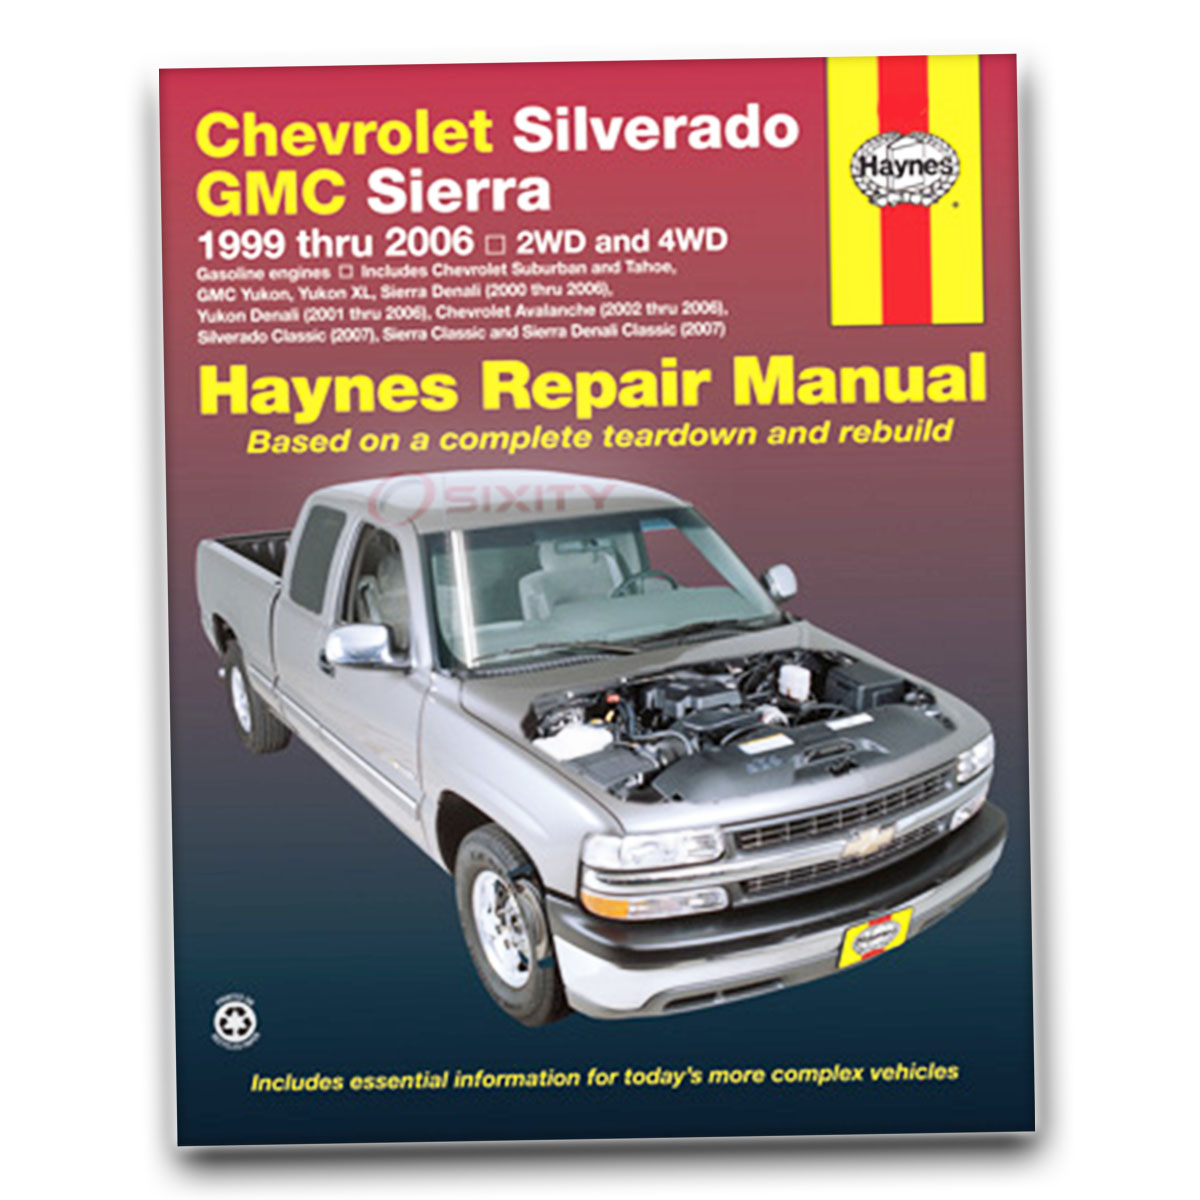 2000 gmc yukon service manual open source user manual u2022 rh dramatic varieties com 2004 gmc sierra service manual 2004 gmc sierra service manual